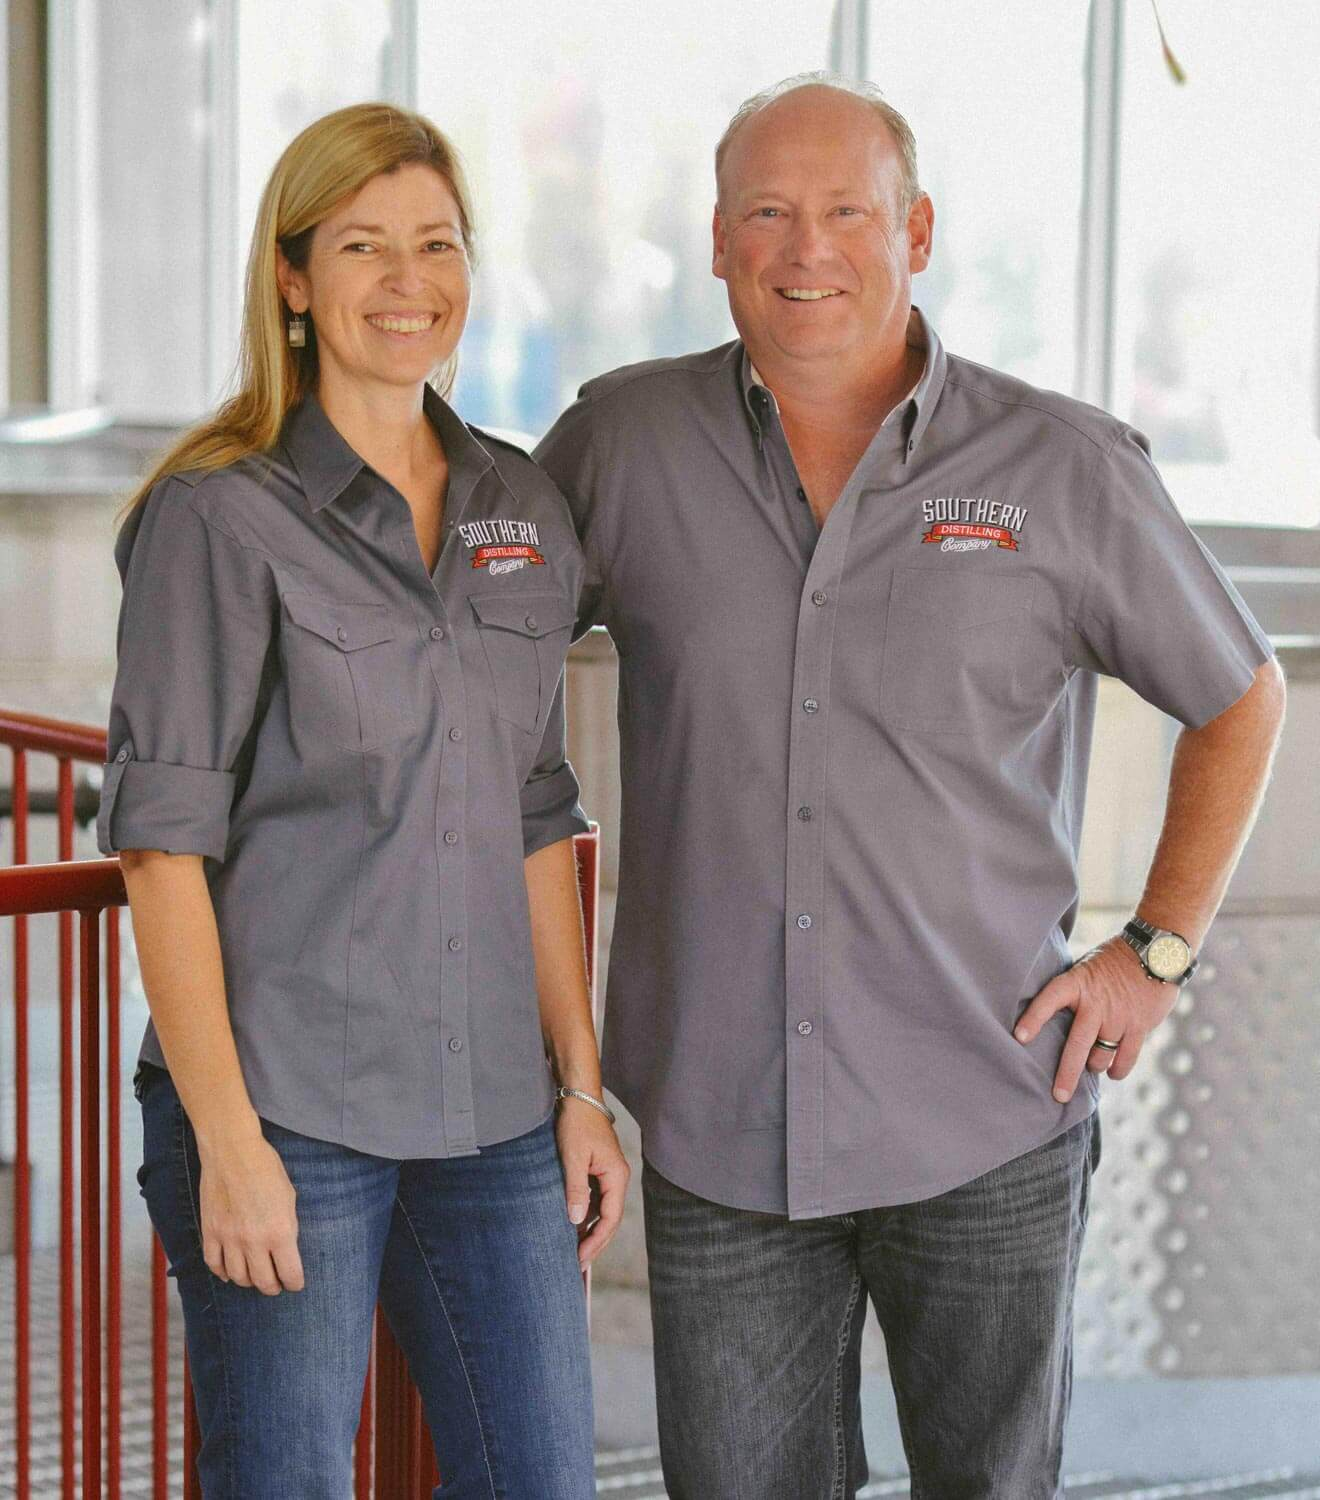 Vienna and Pete Barger of Southern Distilling Co., couple in distillery in uniform